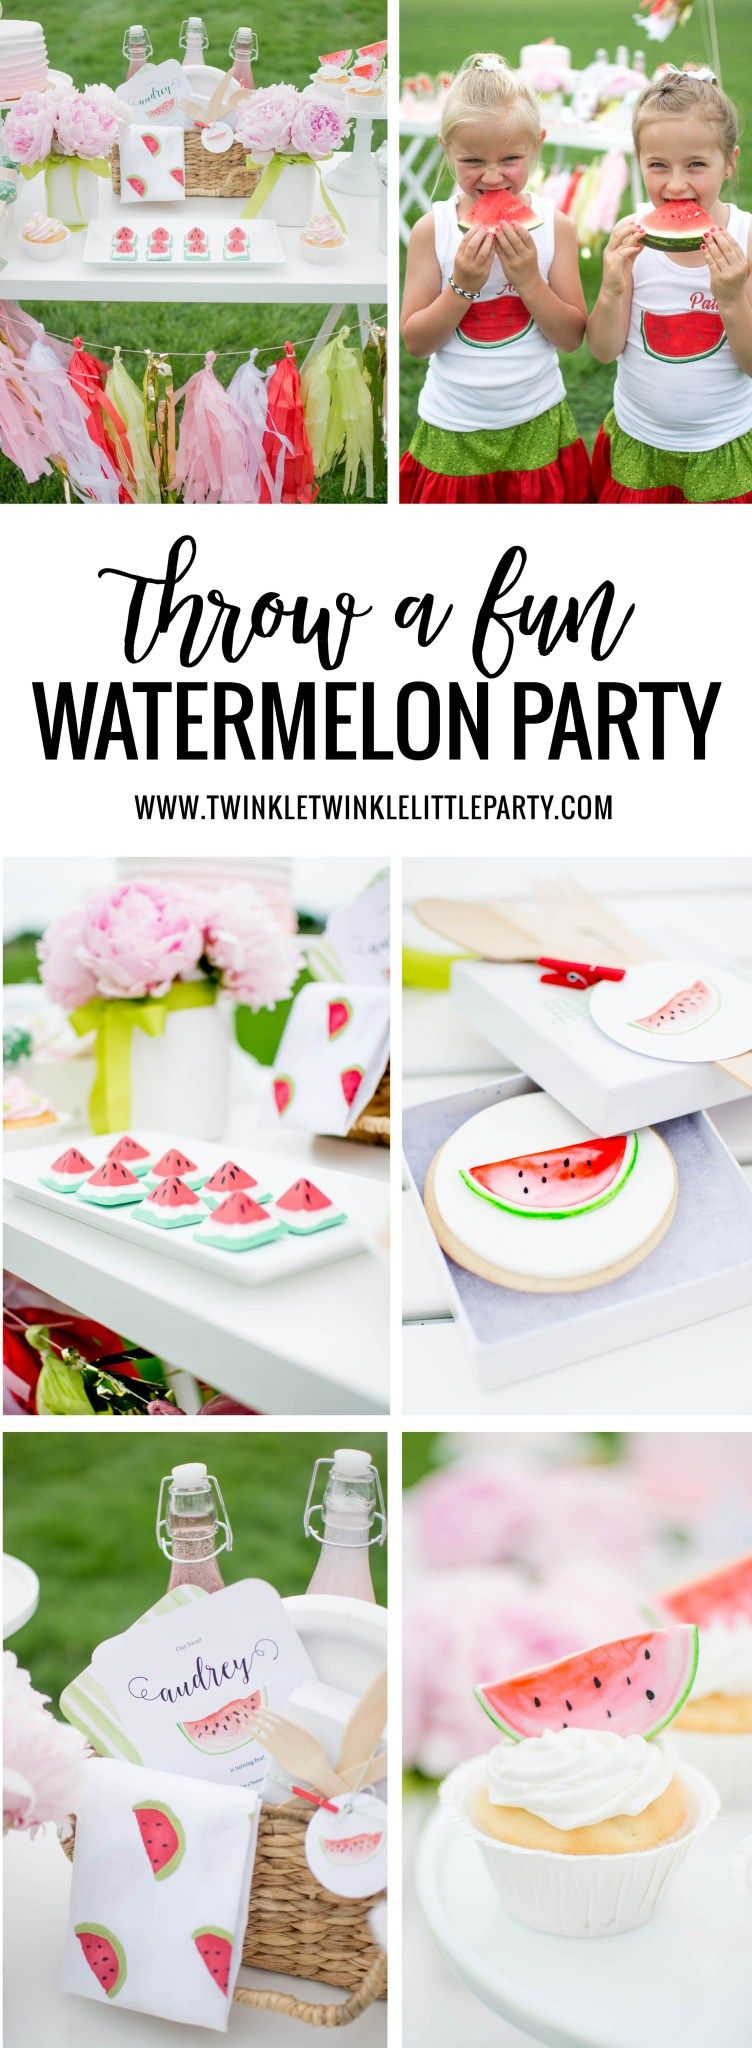 Throw a Fun Watermelon Party